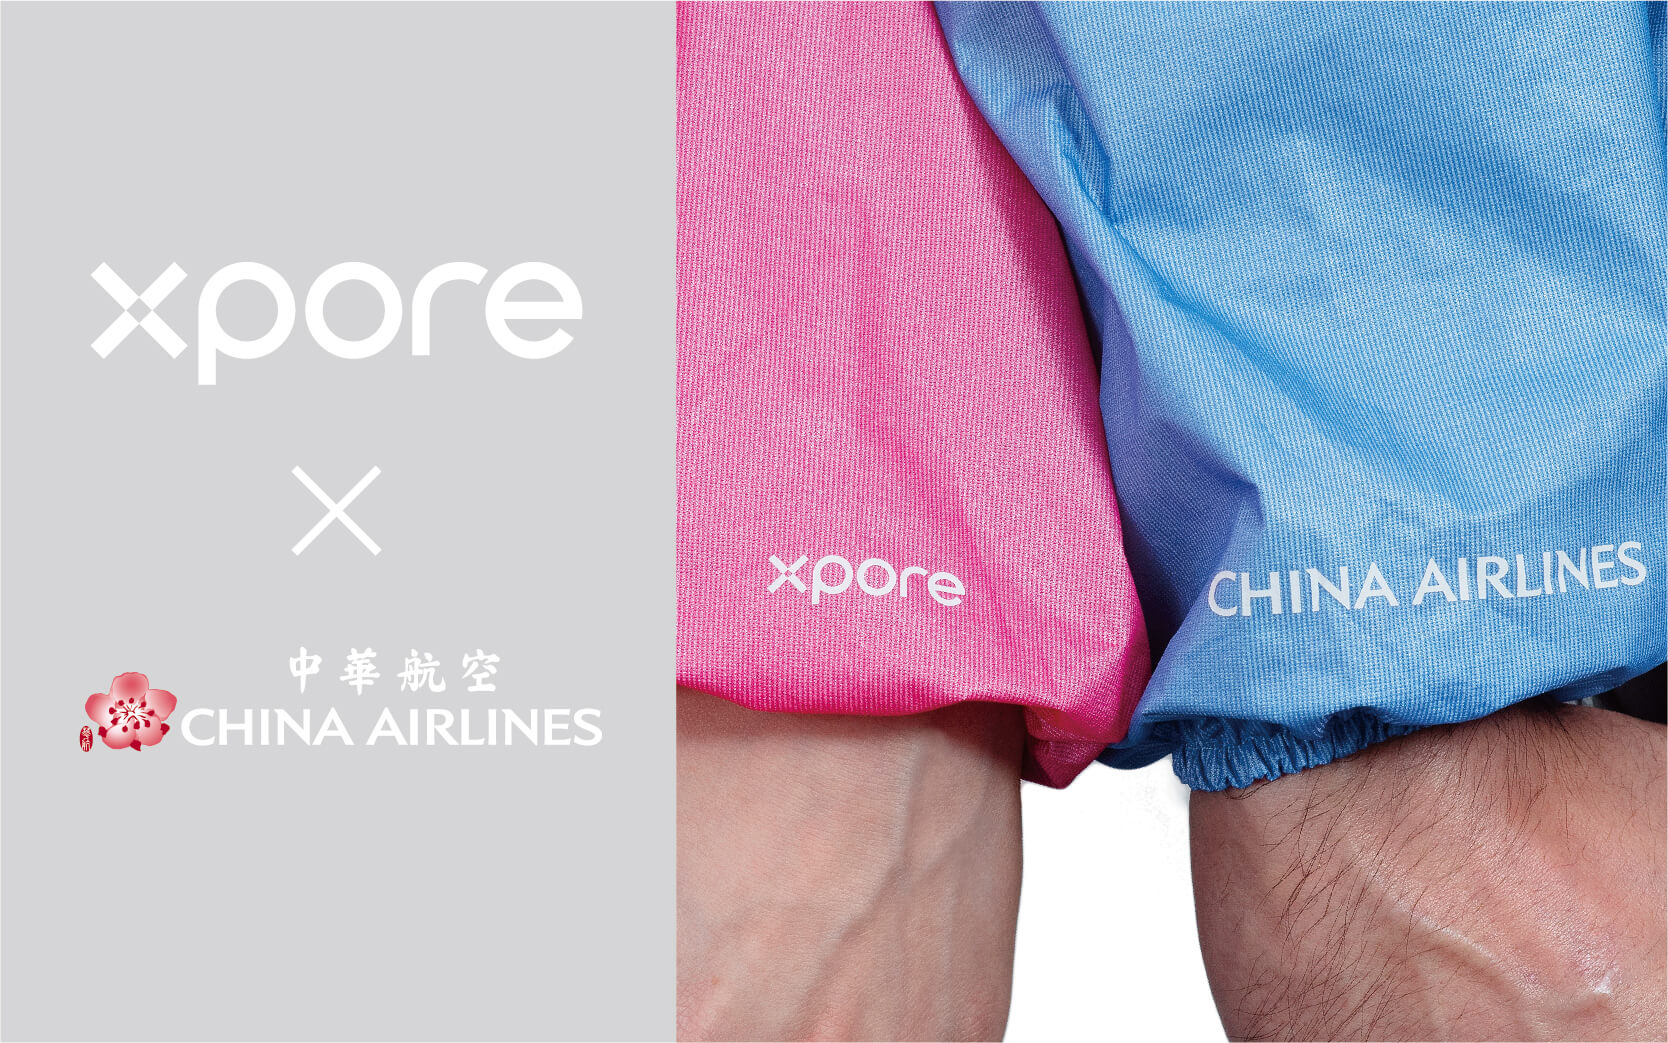 Xpore collaborates with China Airlines to launch world's first-ever functional travel wear